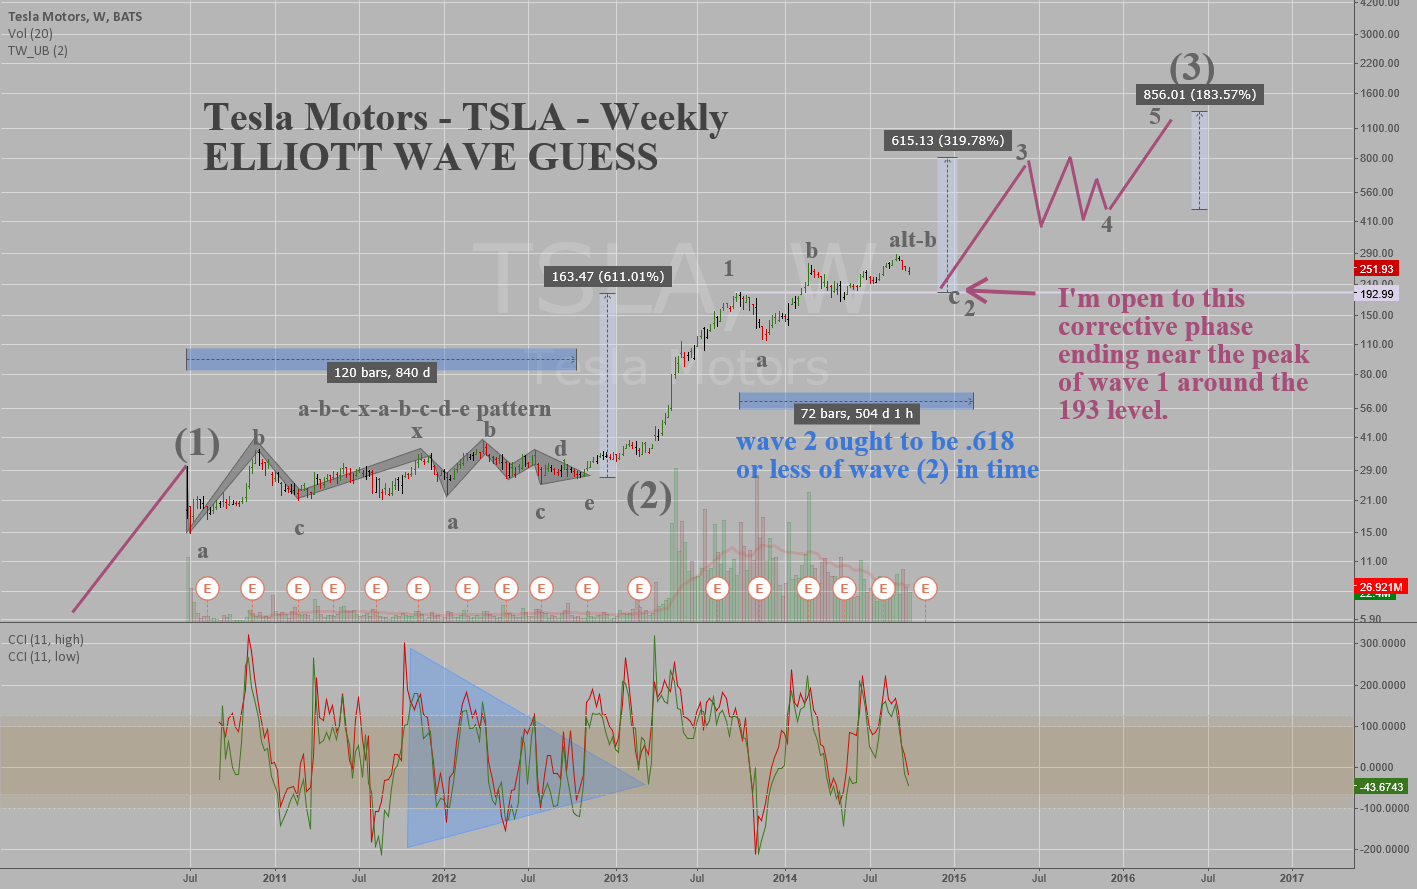 Tesla Motors - TSLA - Weekly - Elliott Wave (Guess)